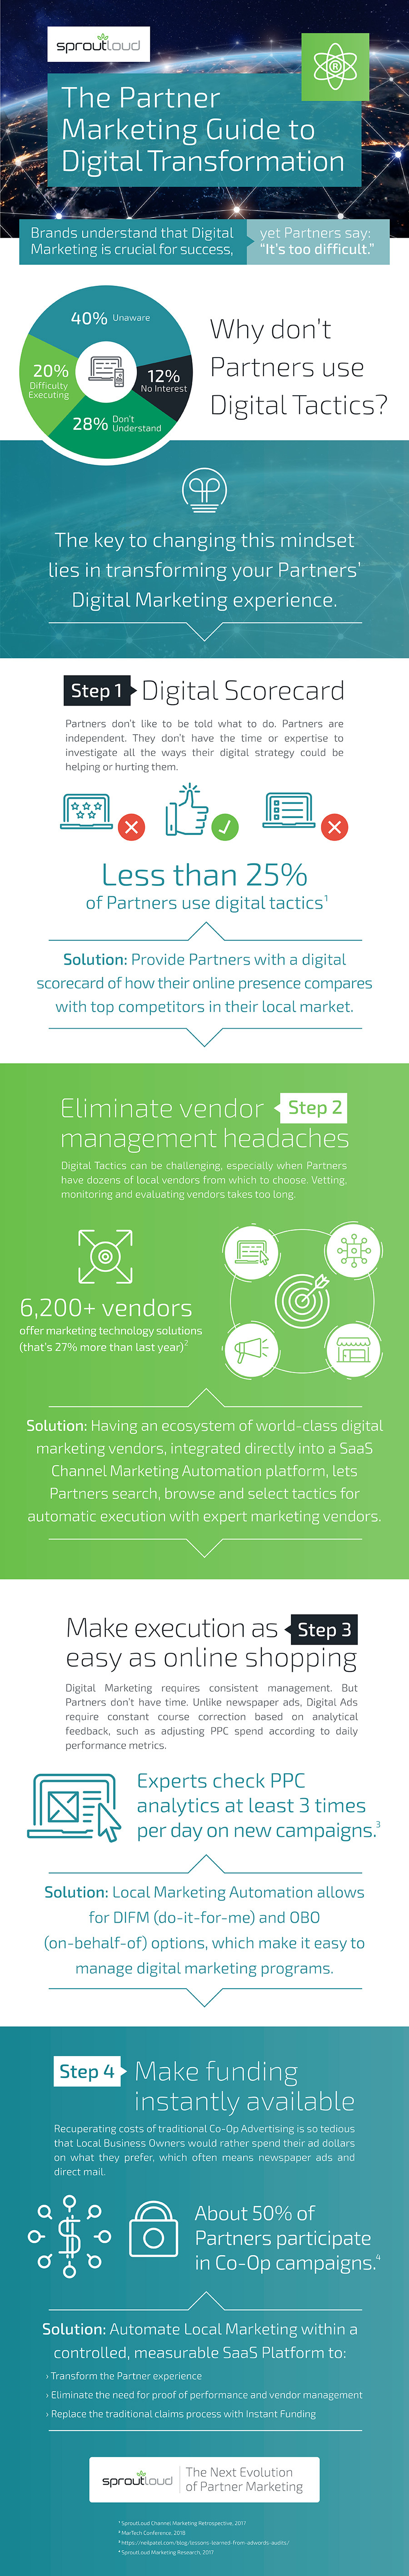 The Partner Marketing Guide to Digital Transformation - infographic